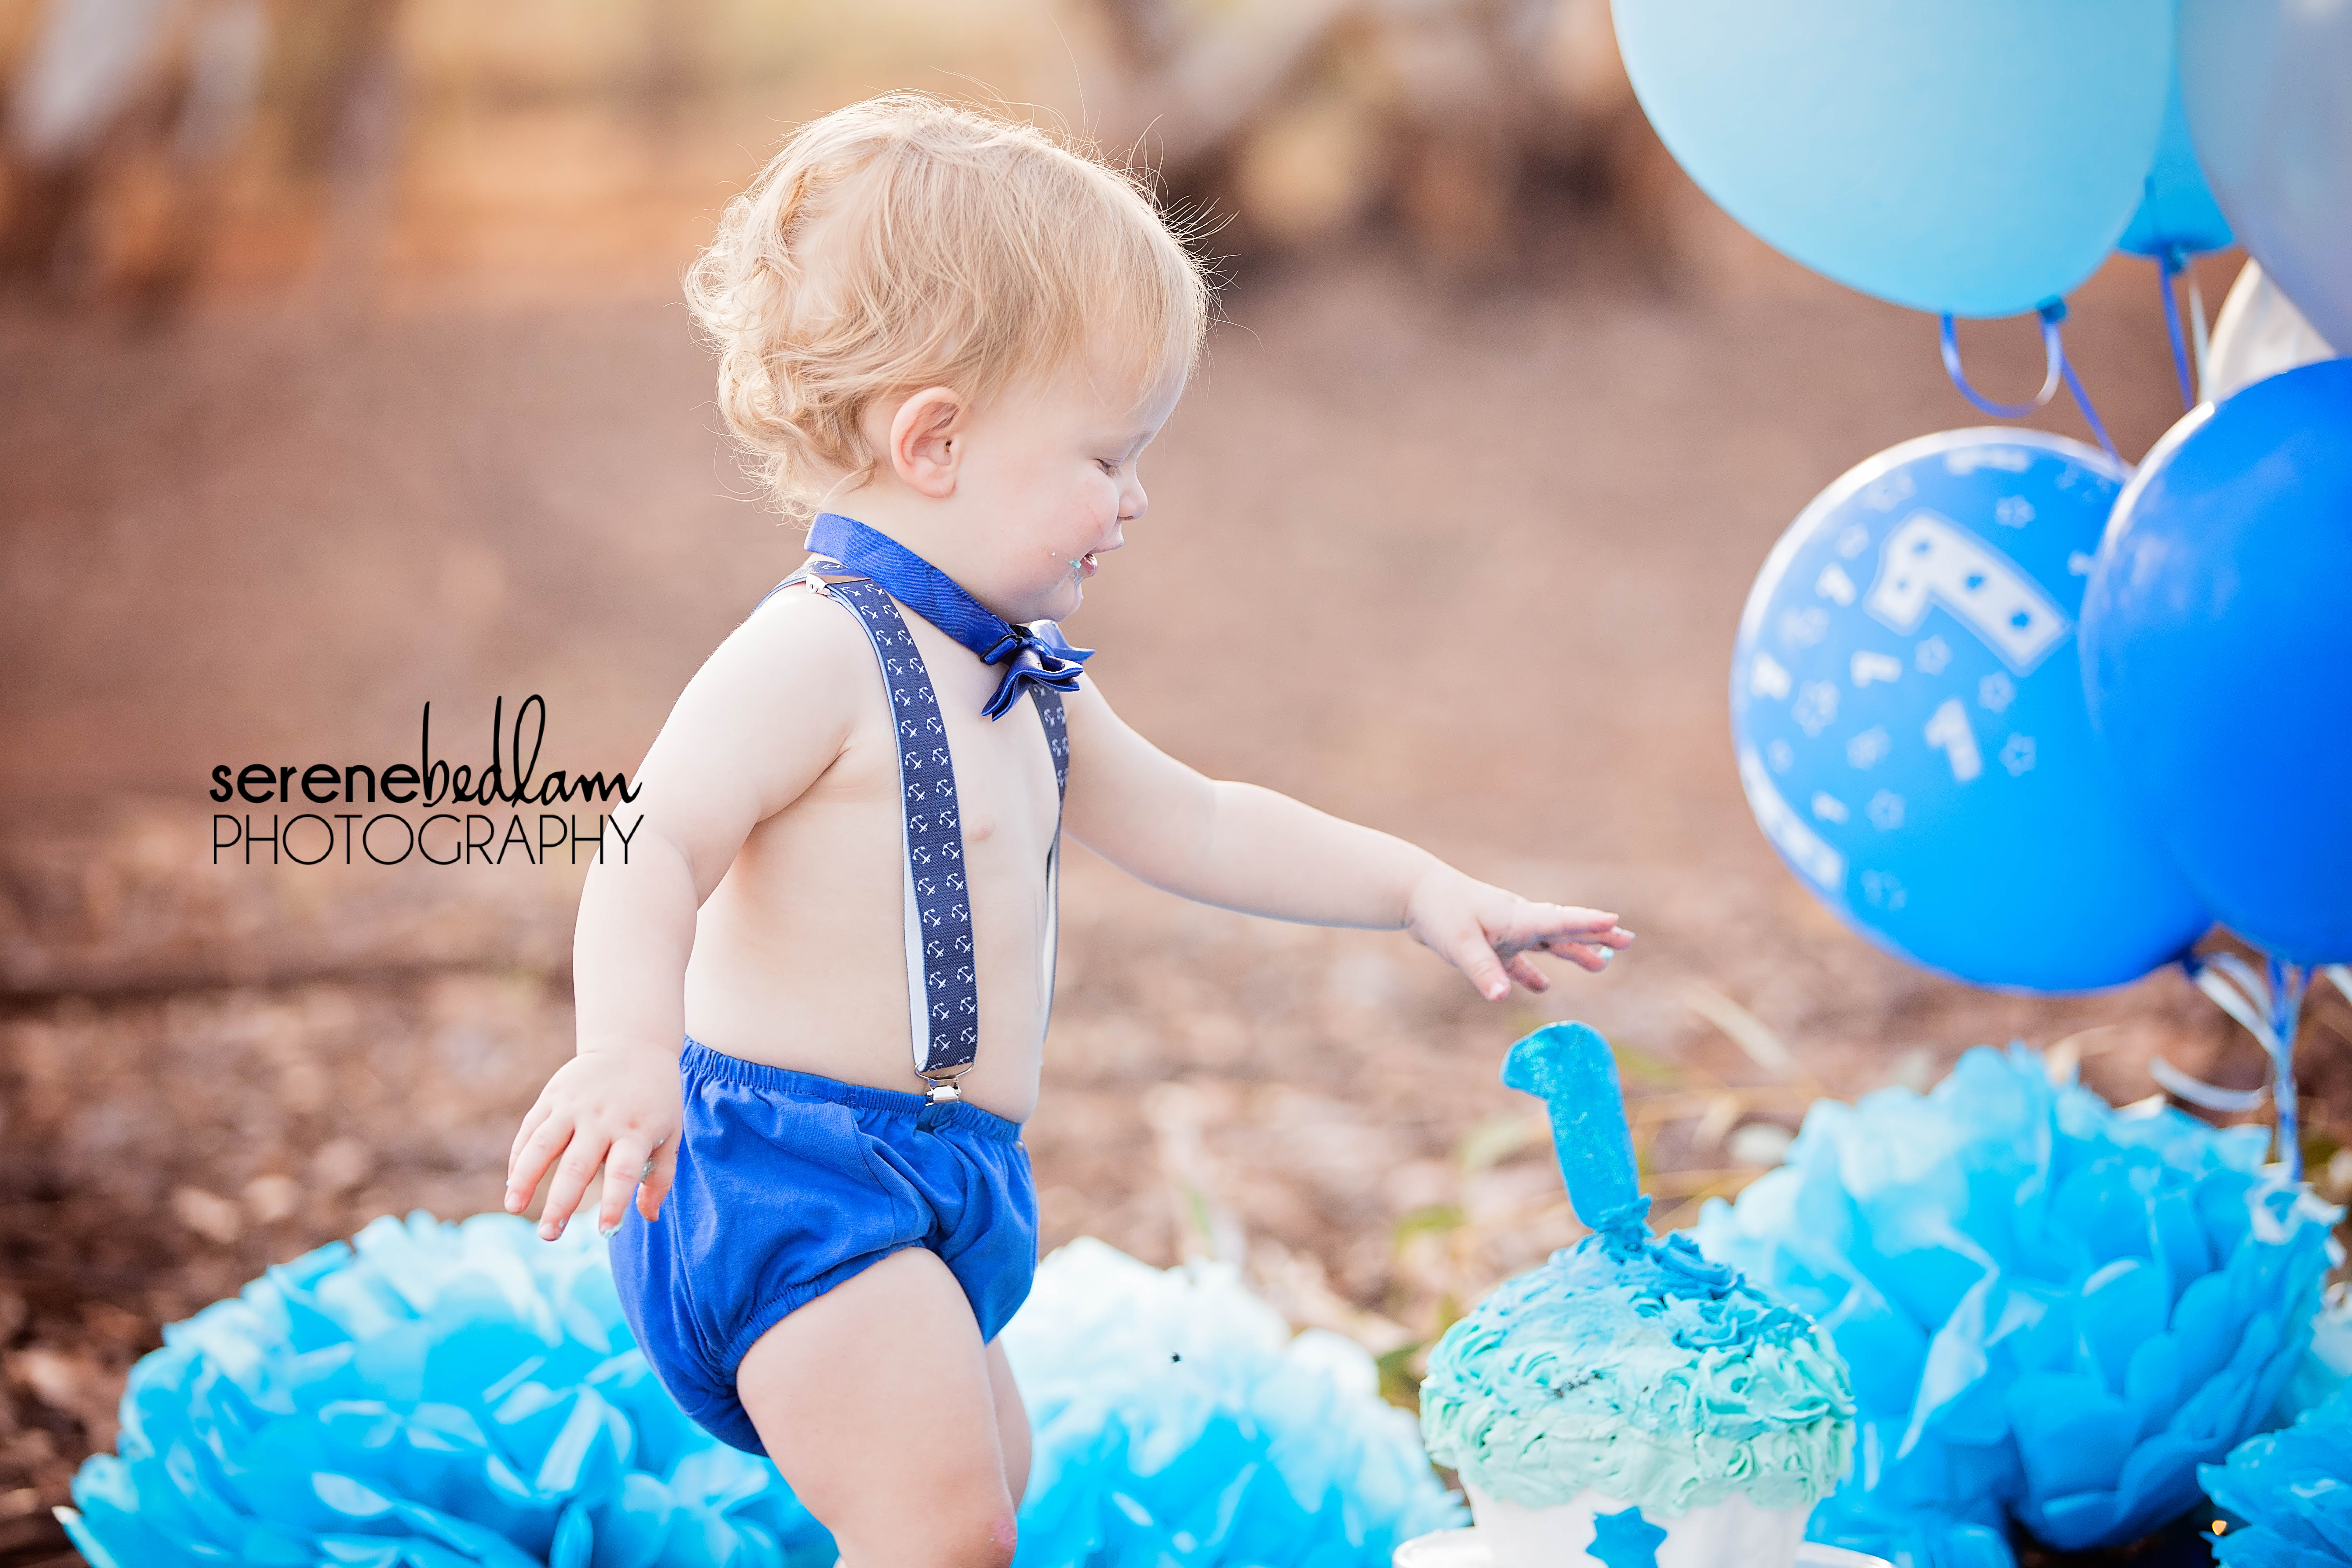 Logan's Cake Smash Outdoors in Newman Serene Bedlam Photography